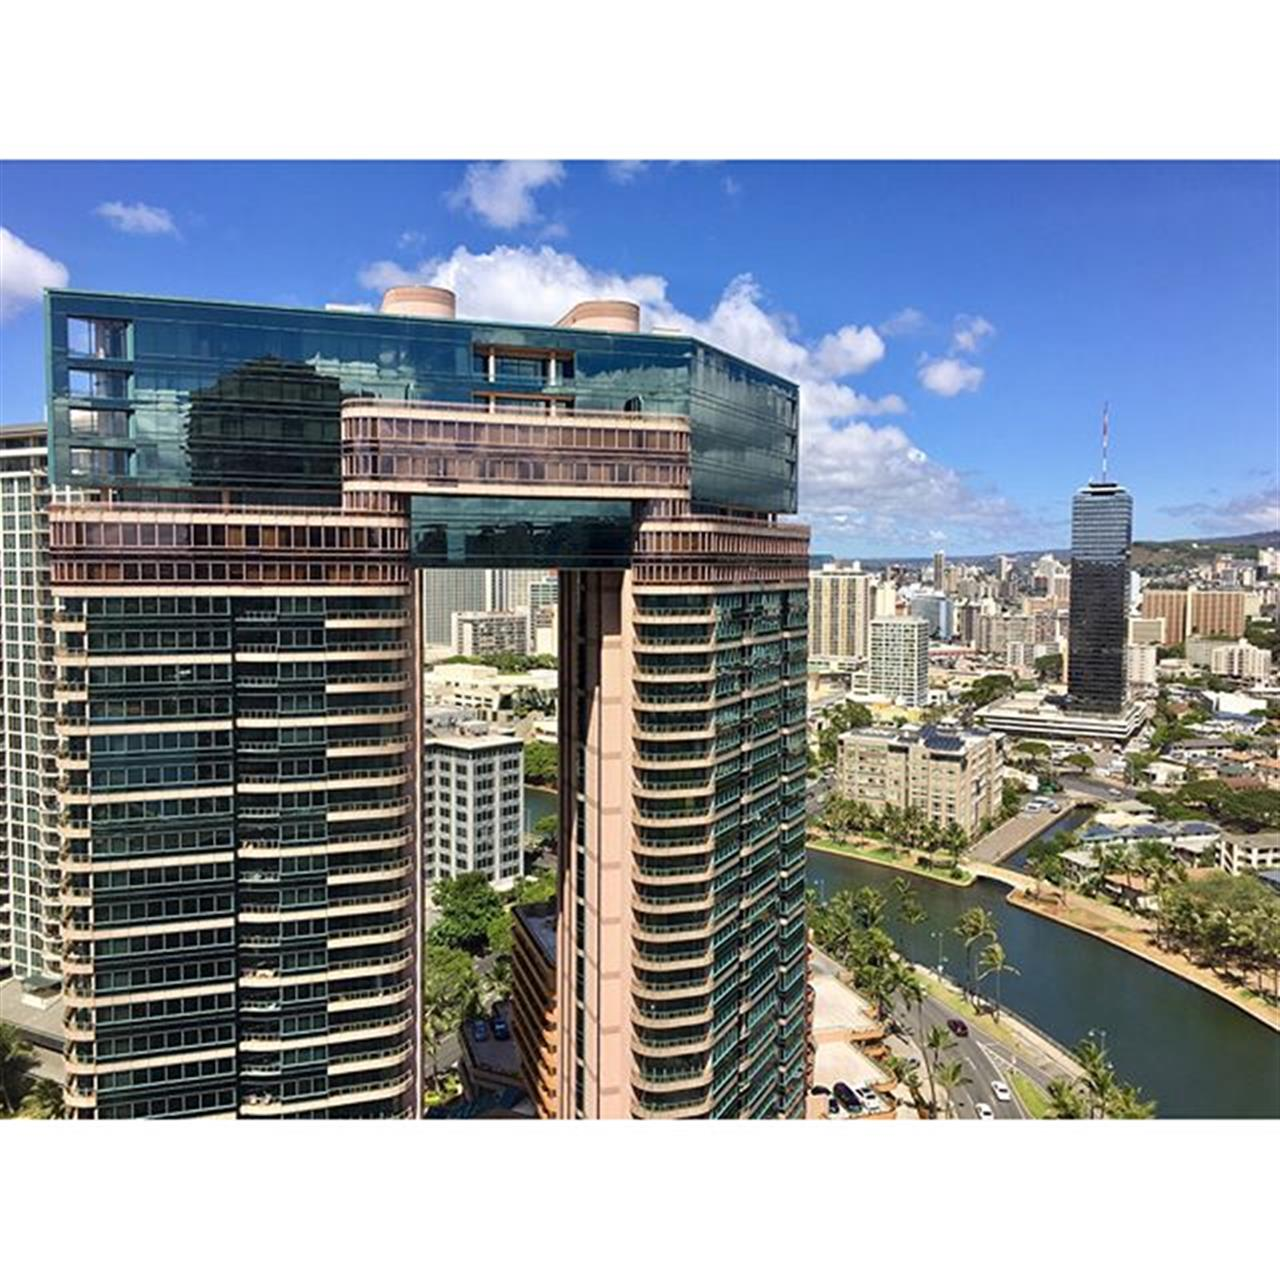 Today's views of #clientshowings in #Waikiki. Legal short-term rentals in #Oahu are hard to find. Submitting an offer later today. ?